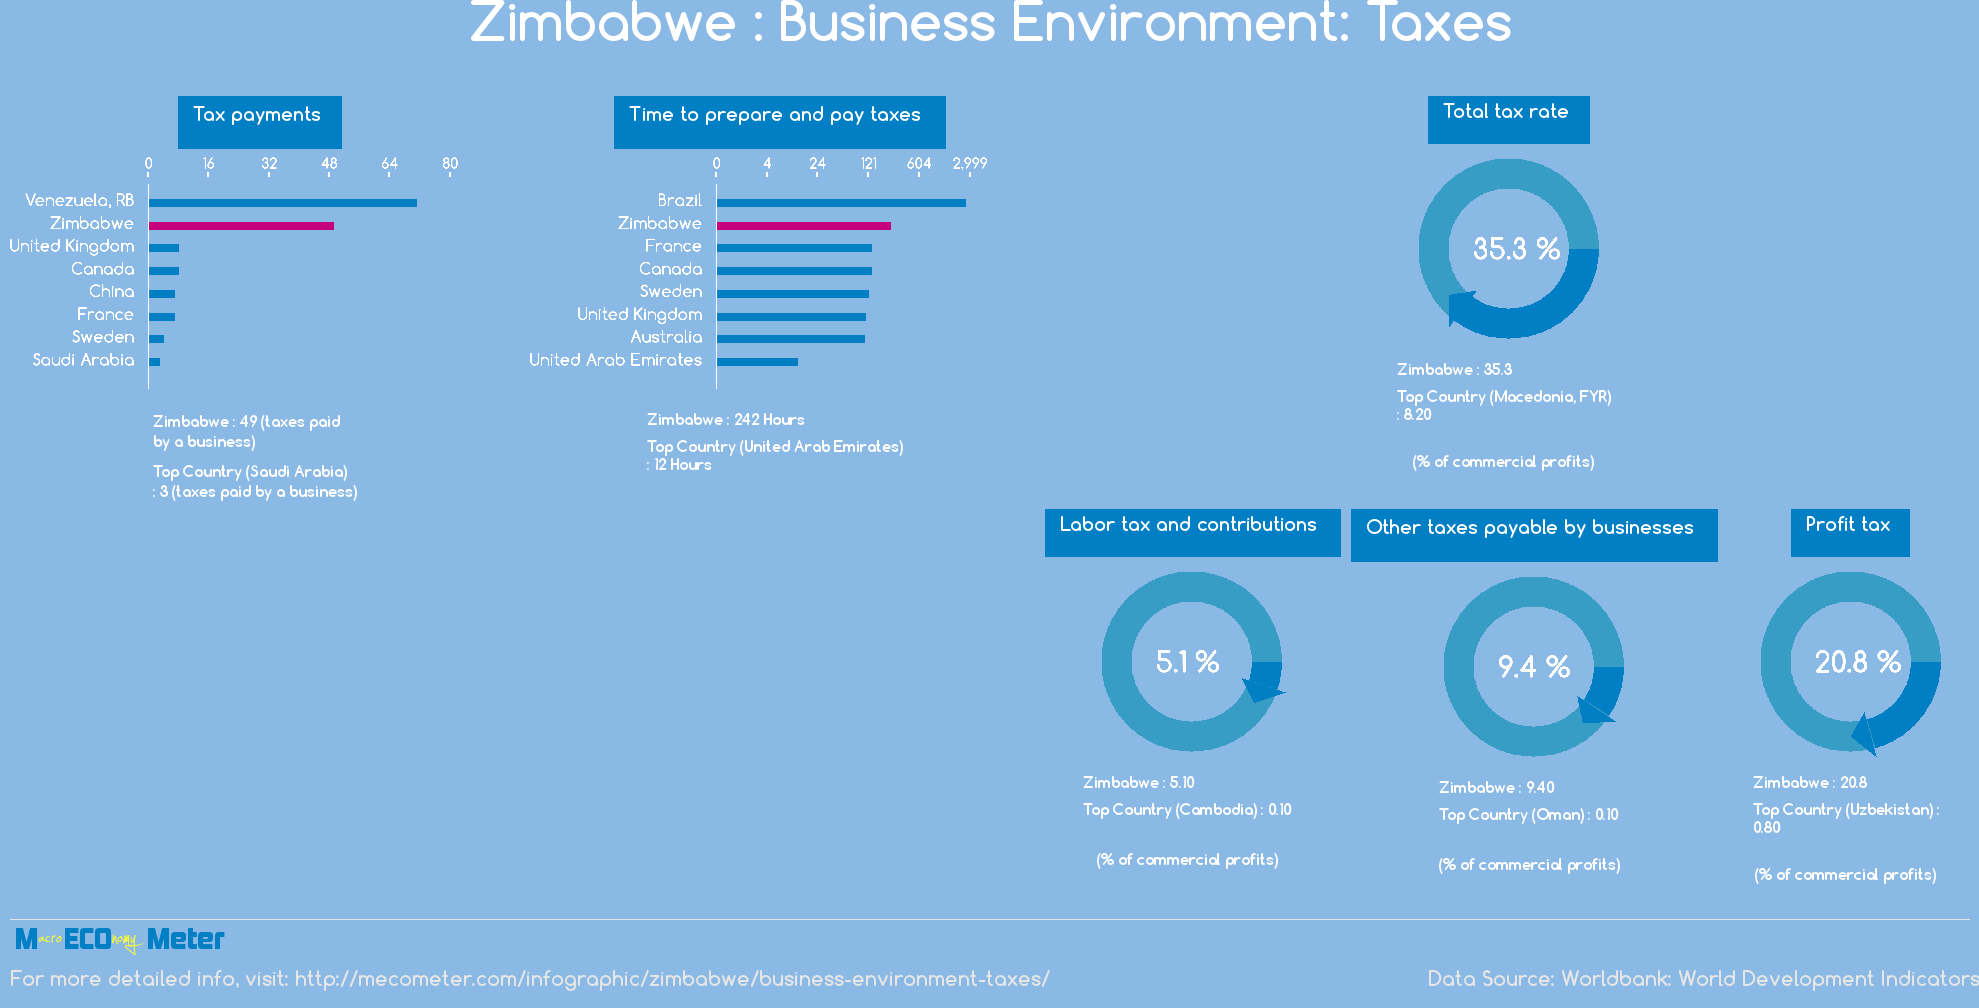 Zimbabwe : Business Environment: Taxes